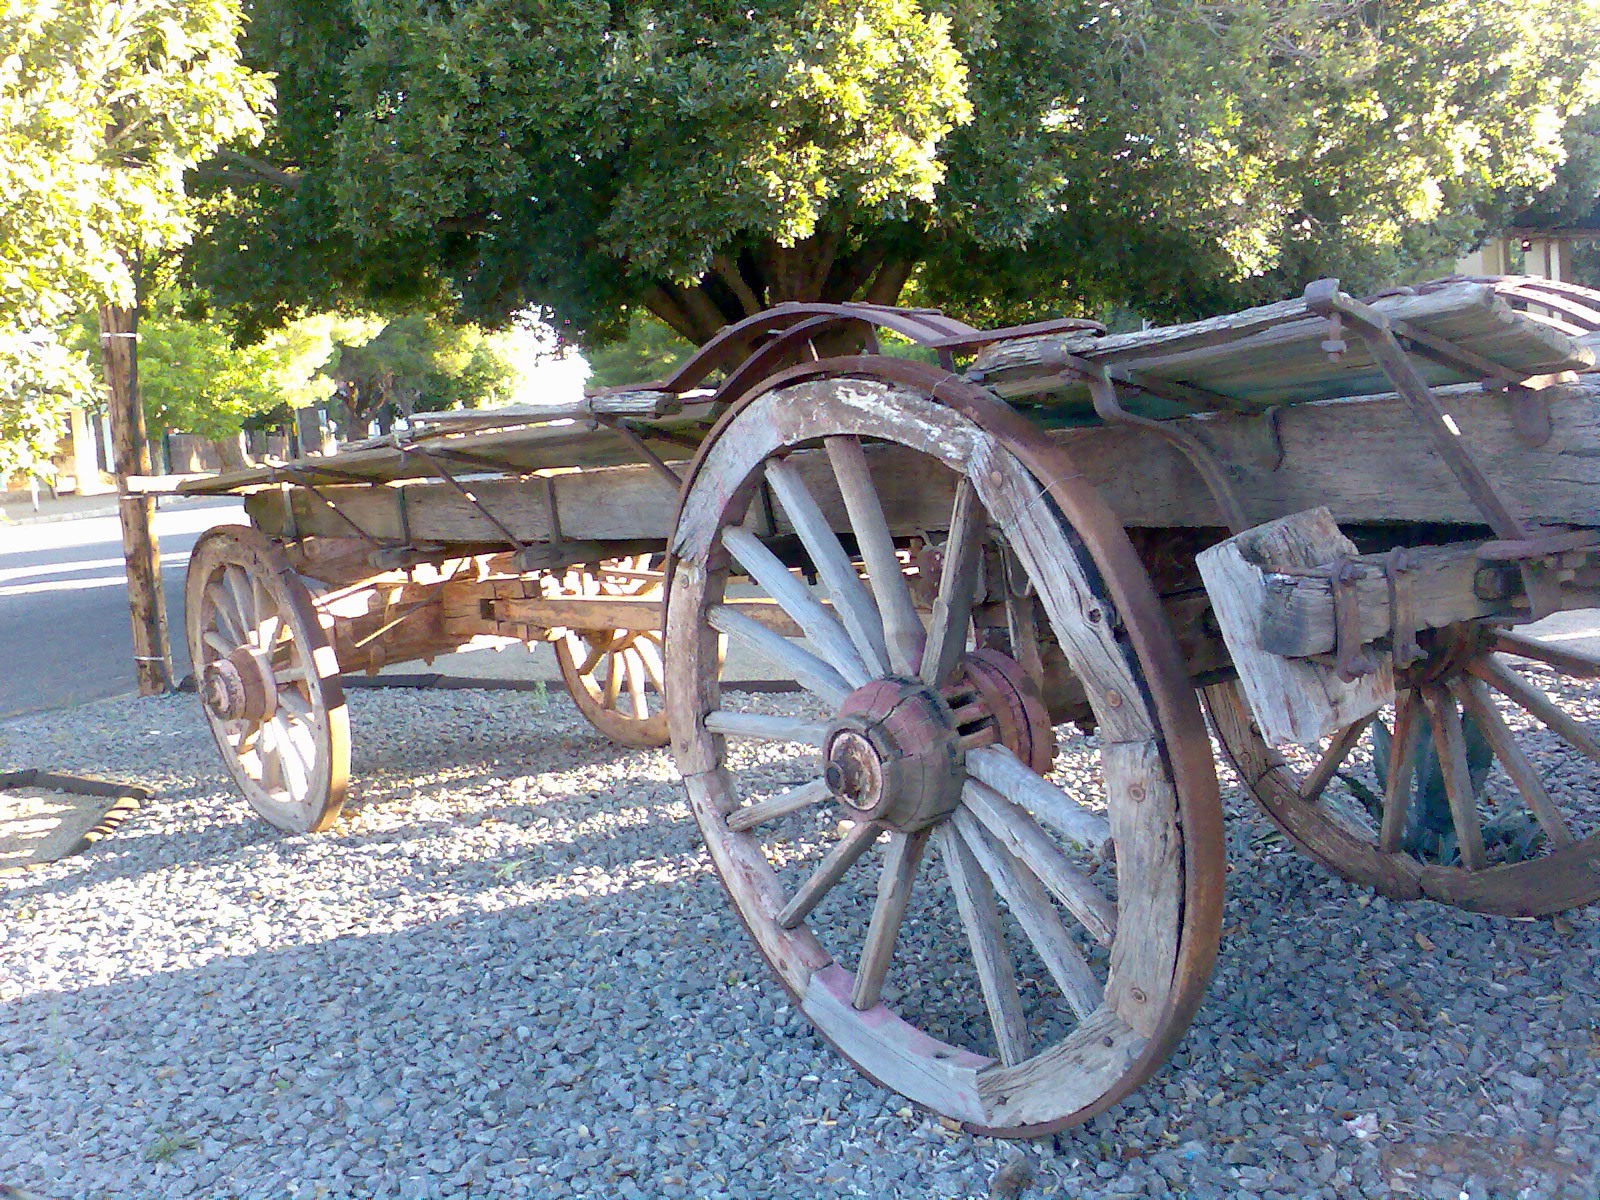 An Ox-wagon in Aliwal North, South Africa. Note the three missing spokes and the metal tyre.